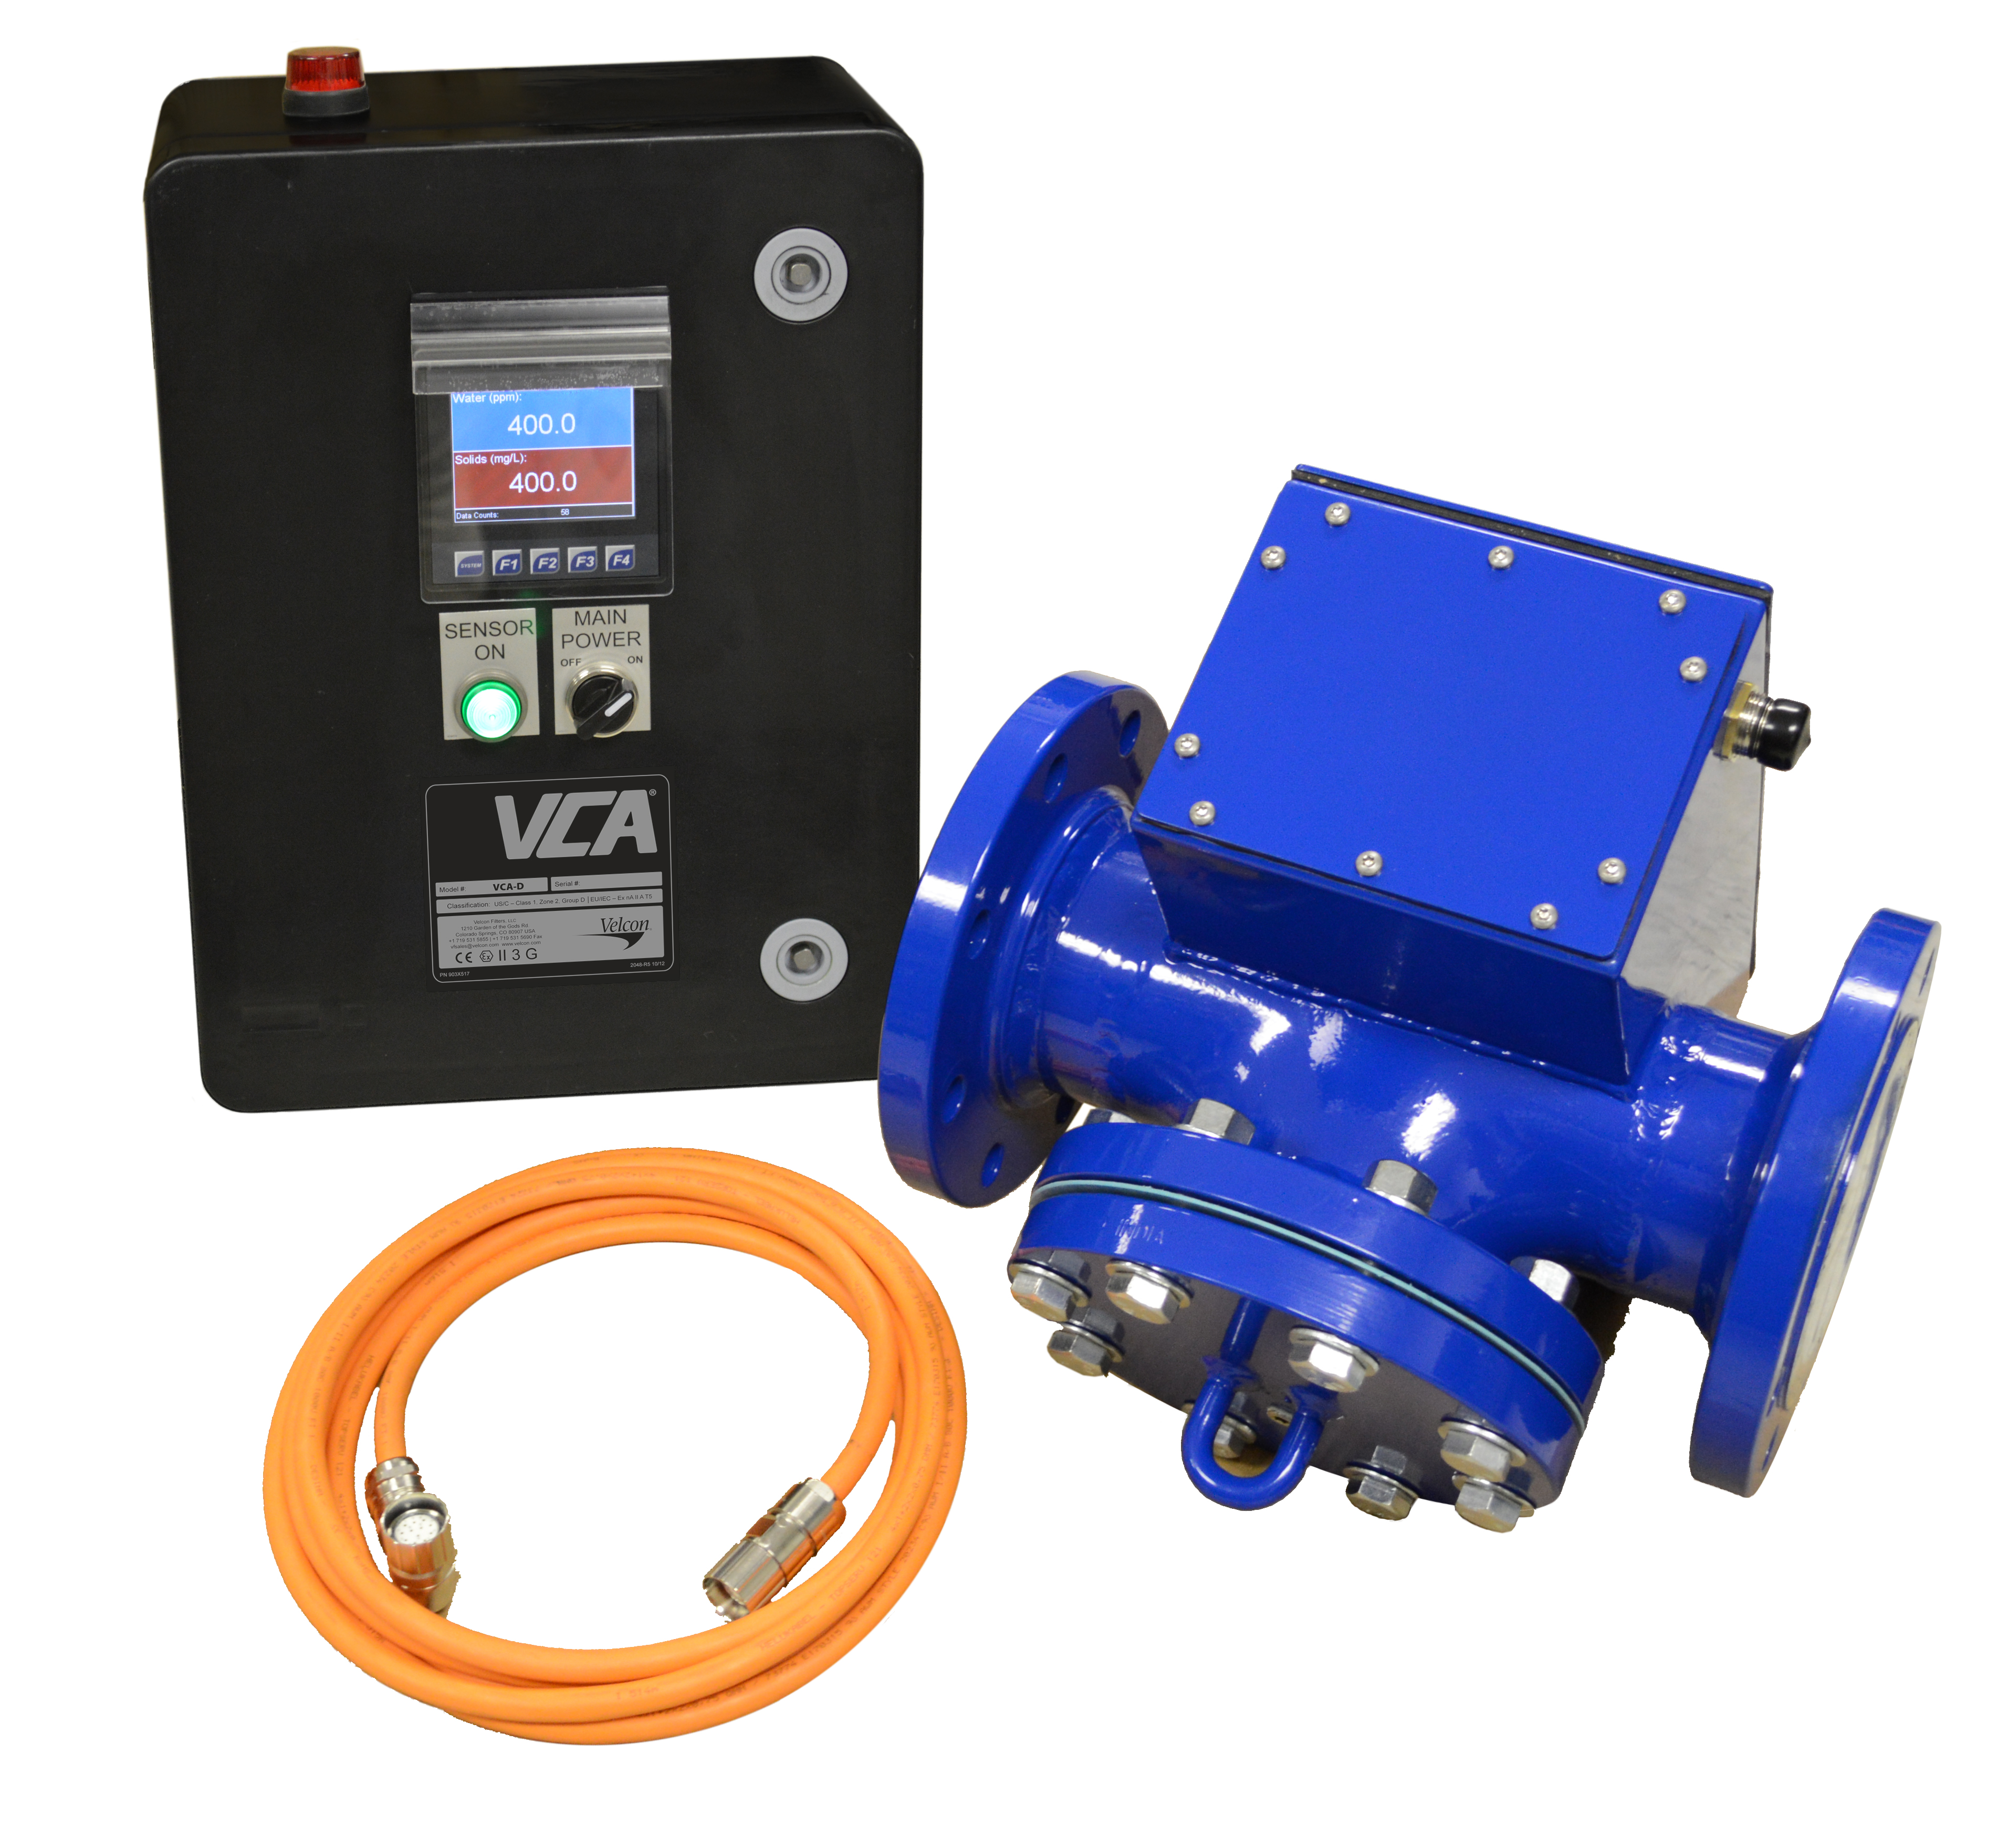 Clean Diesel From The Start Of Supply Chain Parker Velcon Marine Fuel Filter Monitoring Options Include Contaminant Analyser